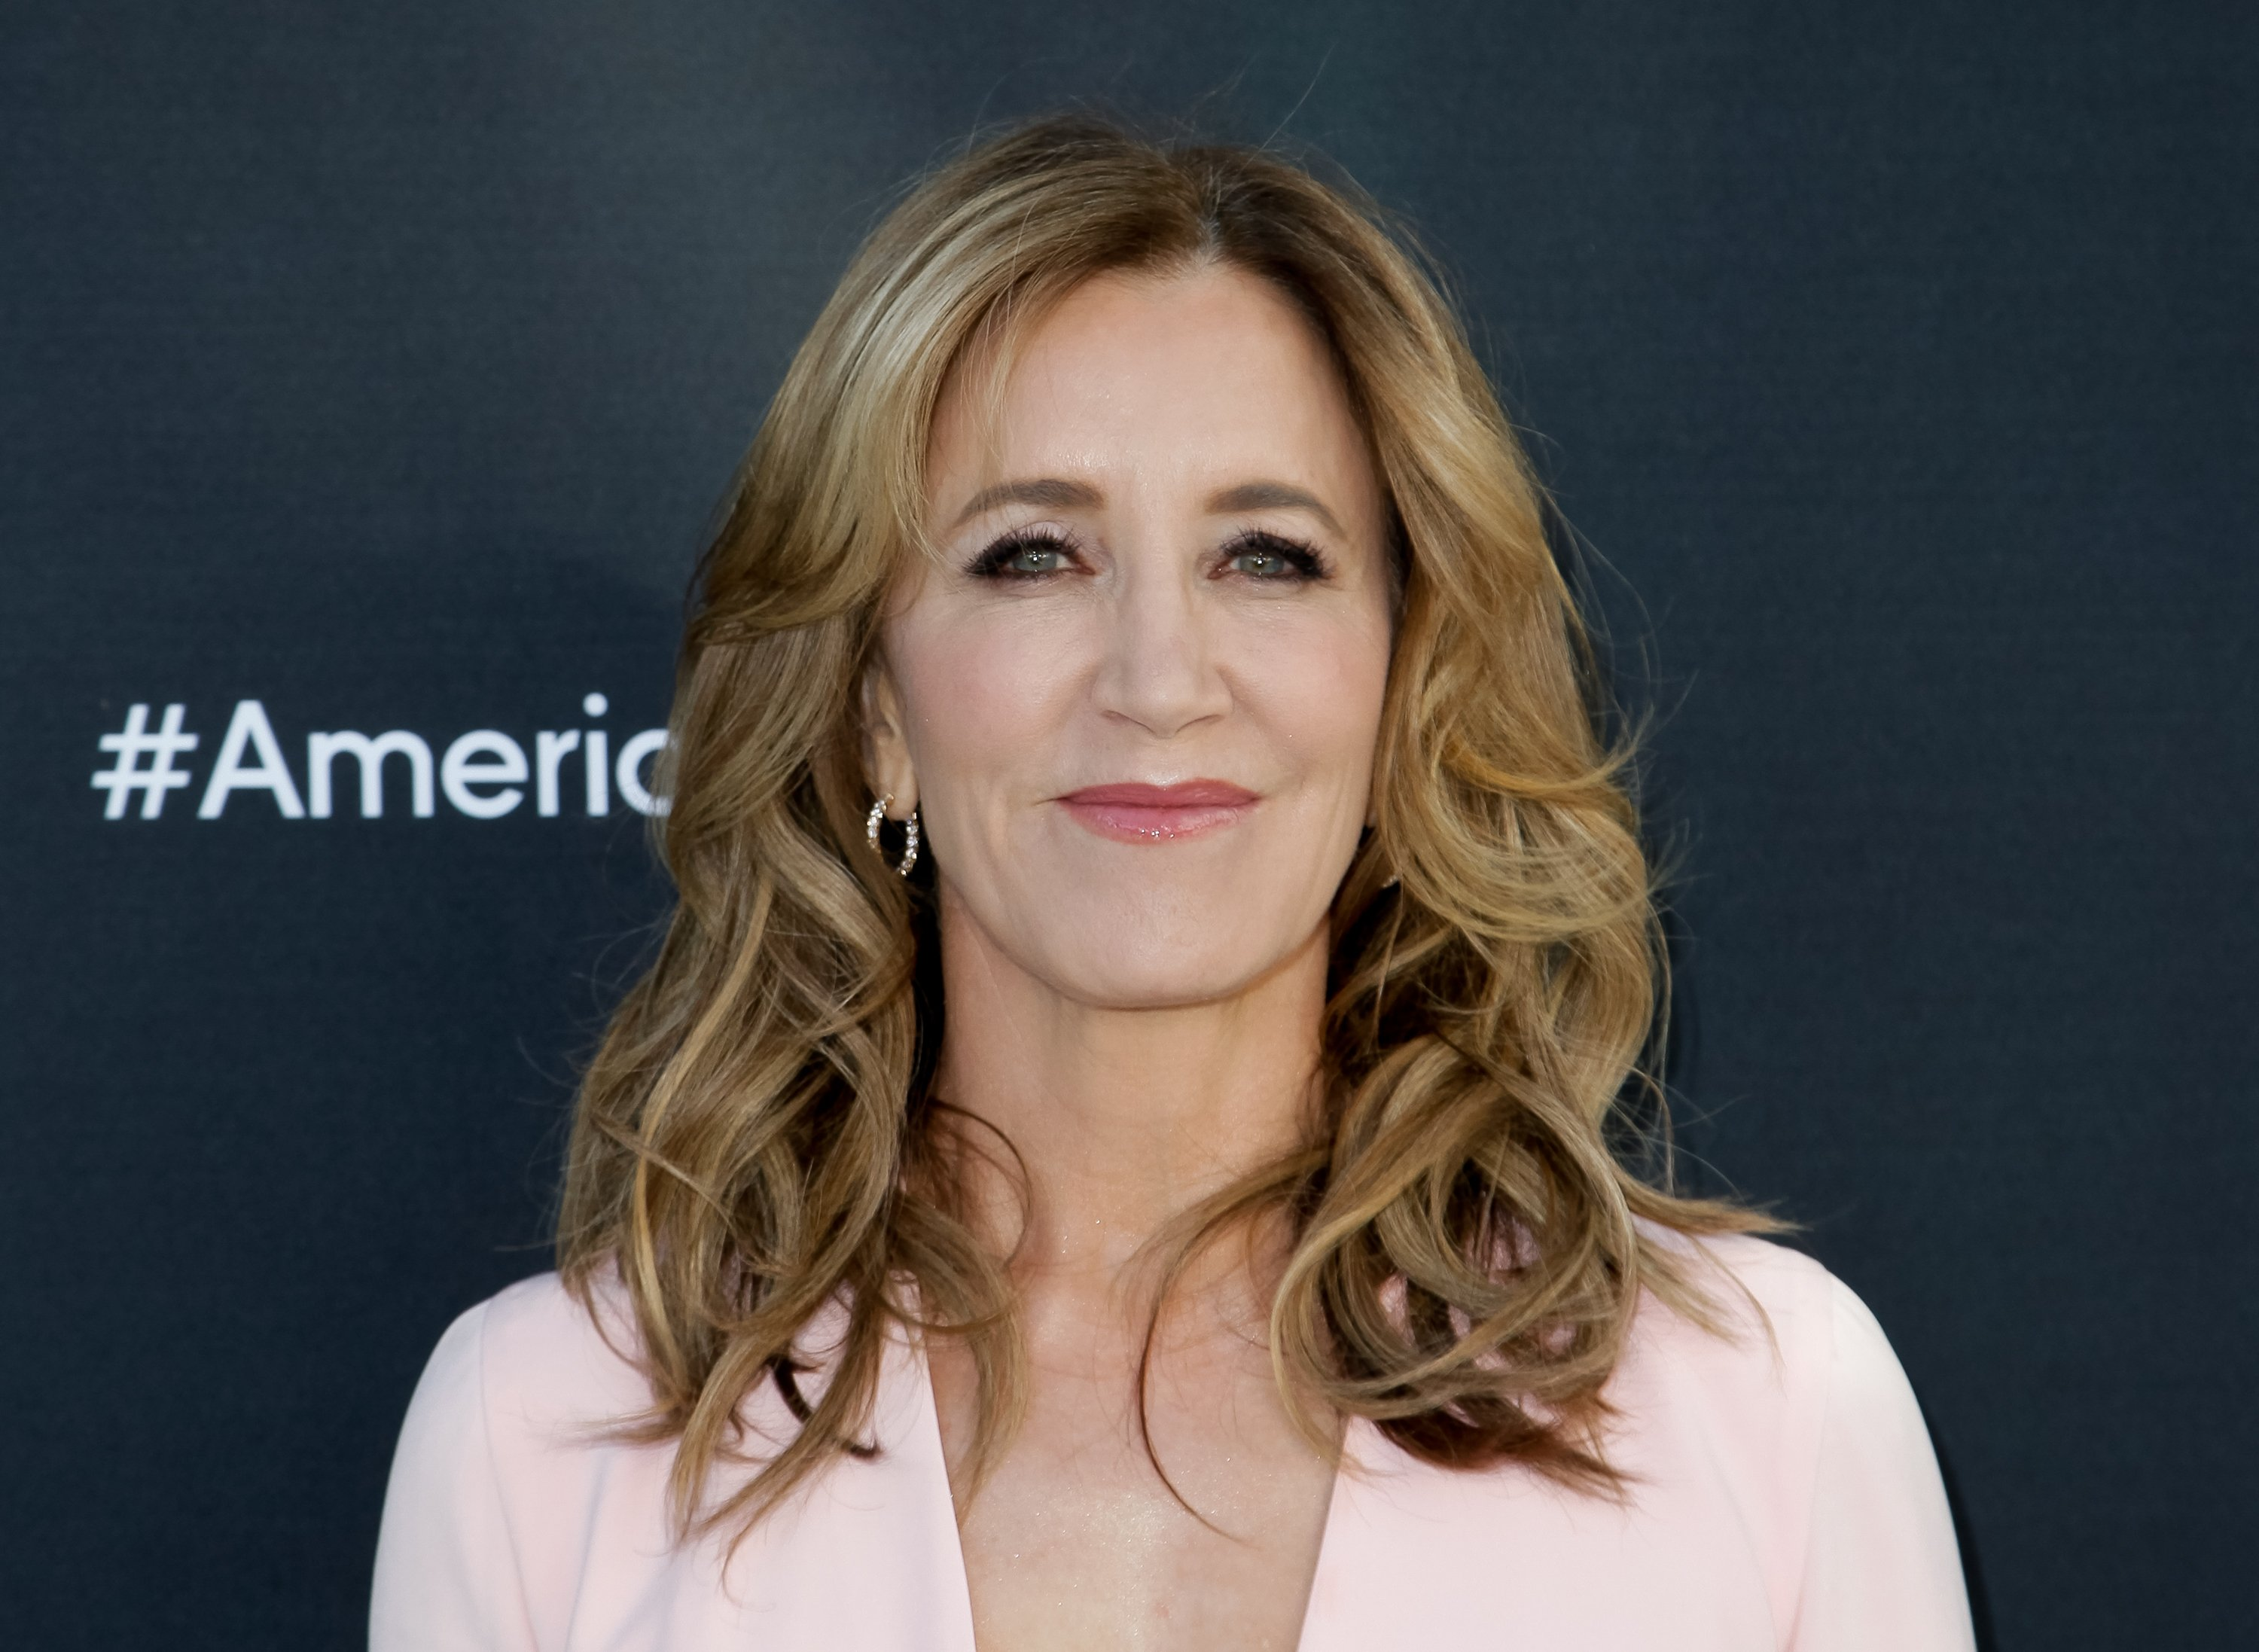 Felicity Huffman attends the FYC event for ABC's 'American Crime' at Saban Media Center on April 29, 2017, in North Hollywood, California. | Source: Getty Images.